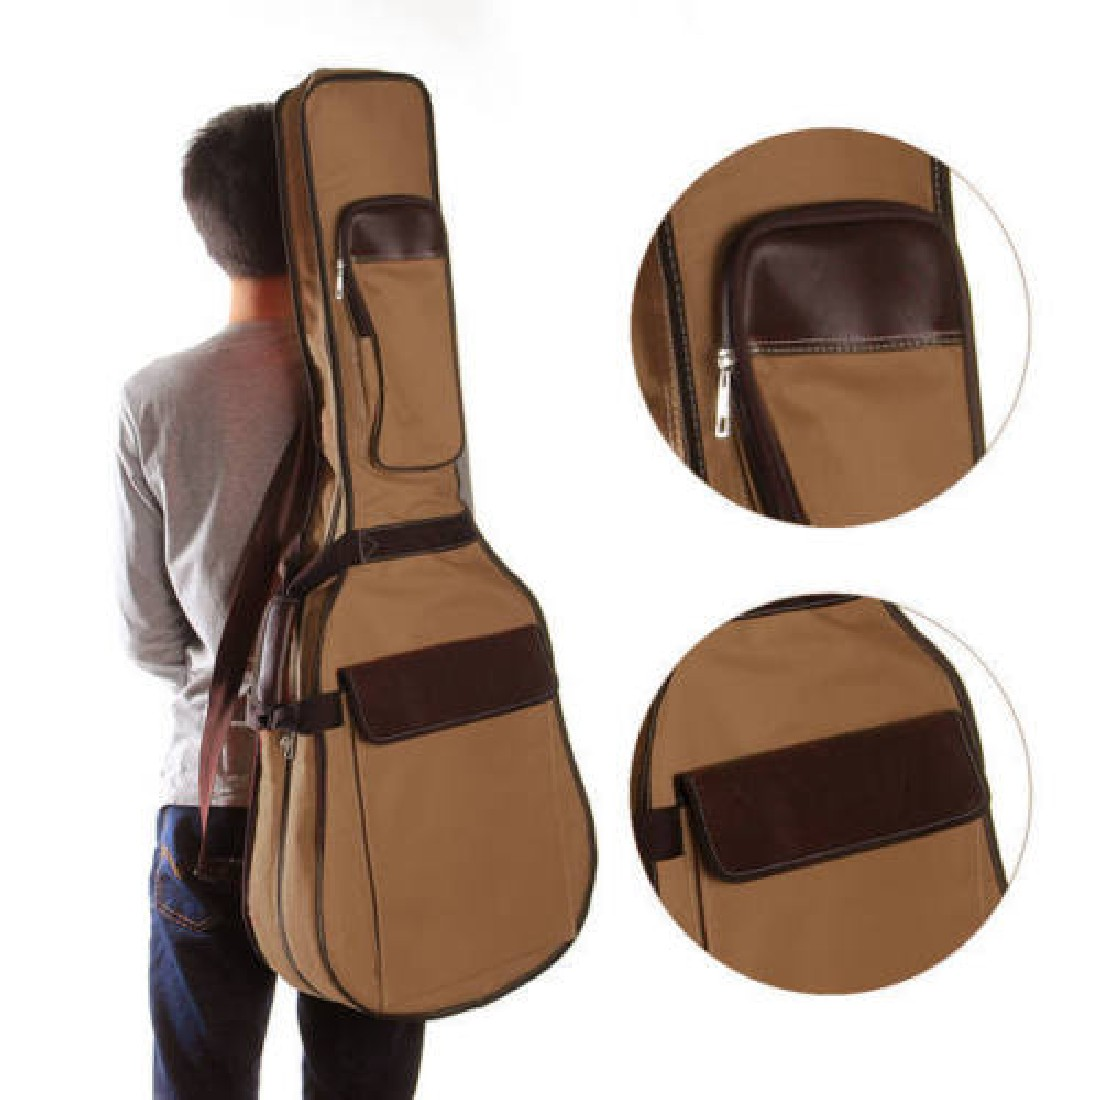 2016 Hot Comfortable Side Handle Double Straps PU Canvas 41 Inches Gig Bag Protective Case Padded For Folk Acoustic Guitar(China (Mainland))